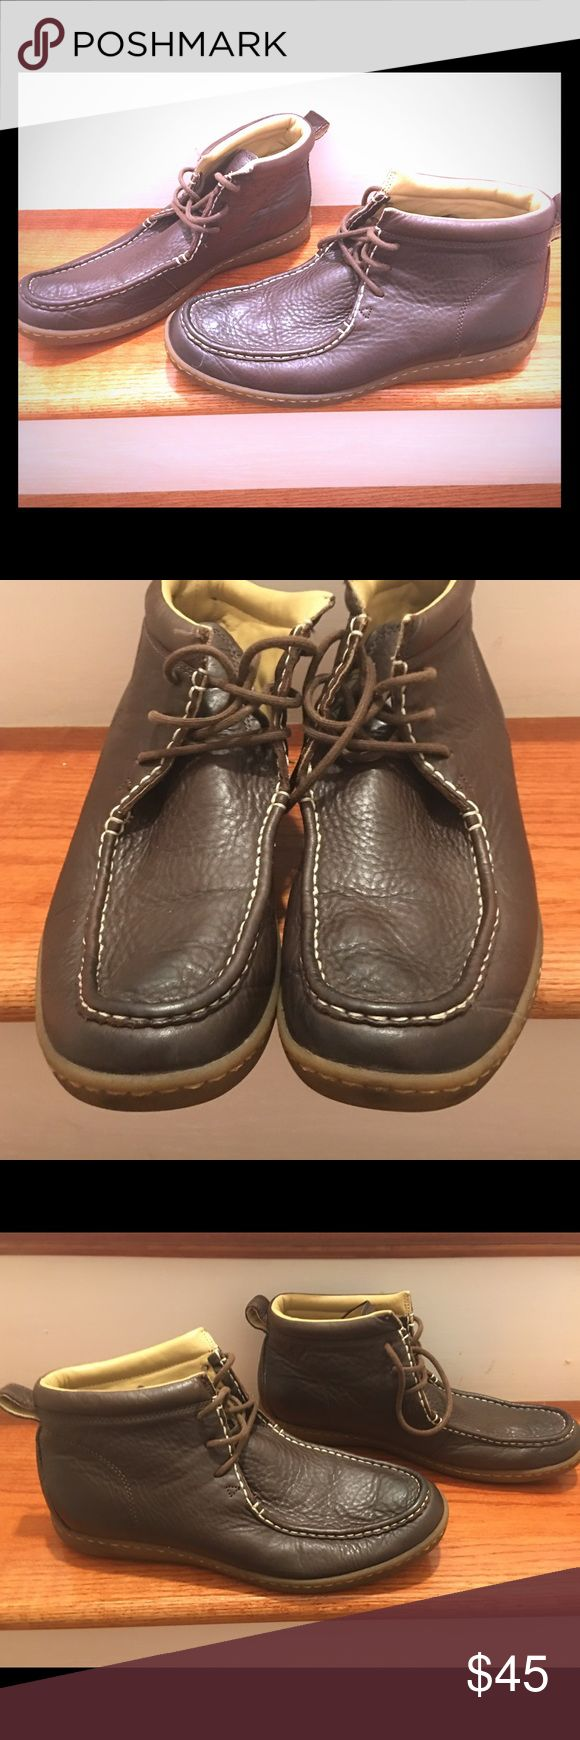 Ugg Brown Leather Boots Ameheurst Mens Size 10.5 Ugg 1002252 Brown Leather Ankle Boots Ameheurst chukka Mens Size 10.5. Please contact me with questions. UGG Shoes Chukka Boots